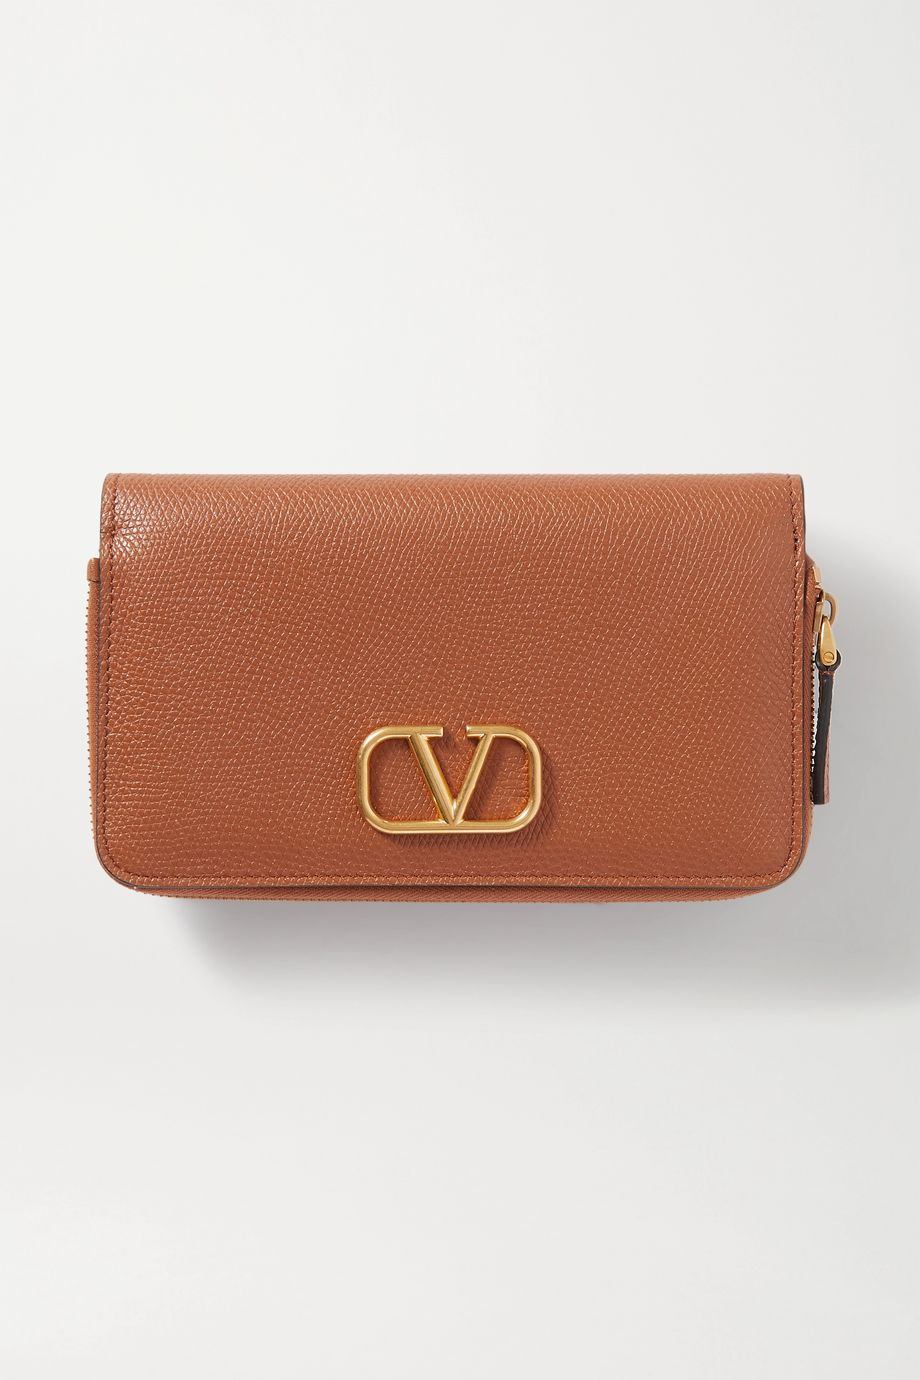 Valentino Valentino Garavani VSLING textured-leather wallet